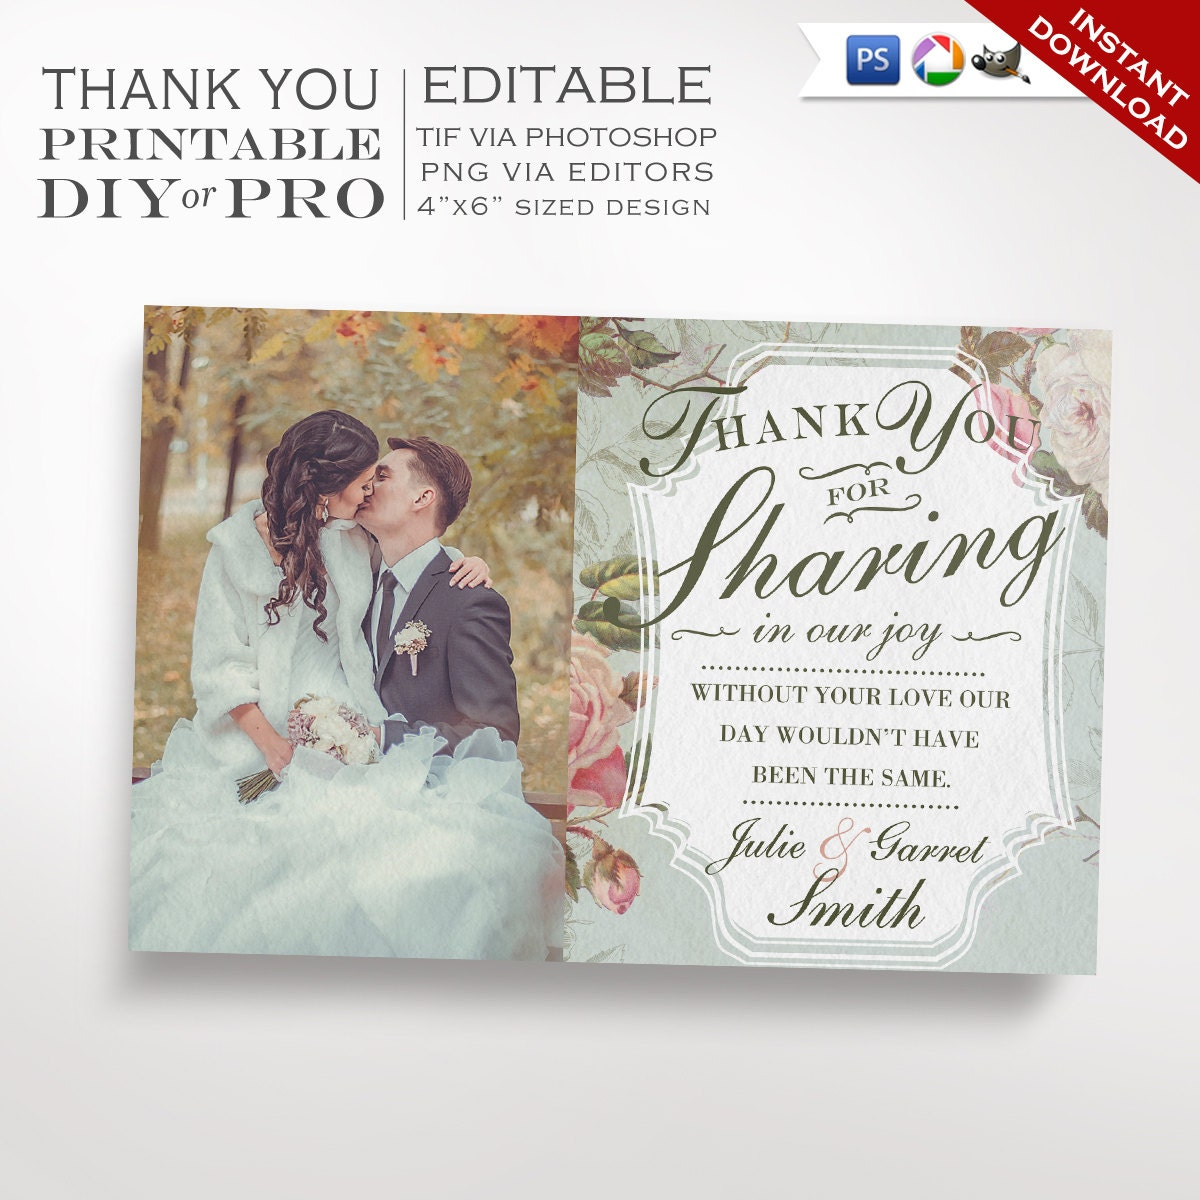 Wedding thank you template gallery one with wedding thank you wedding thank you template gallery one with wedding thank you template resume template 2019 maxwellsz